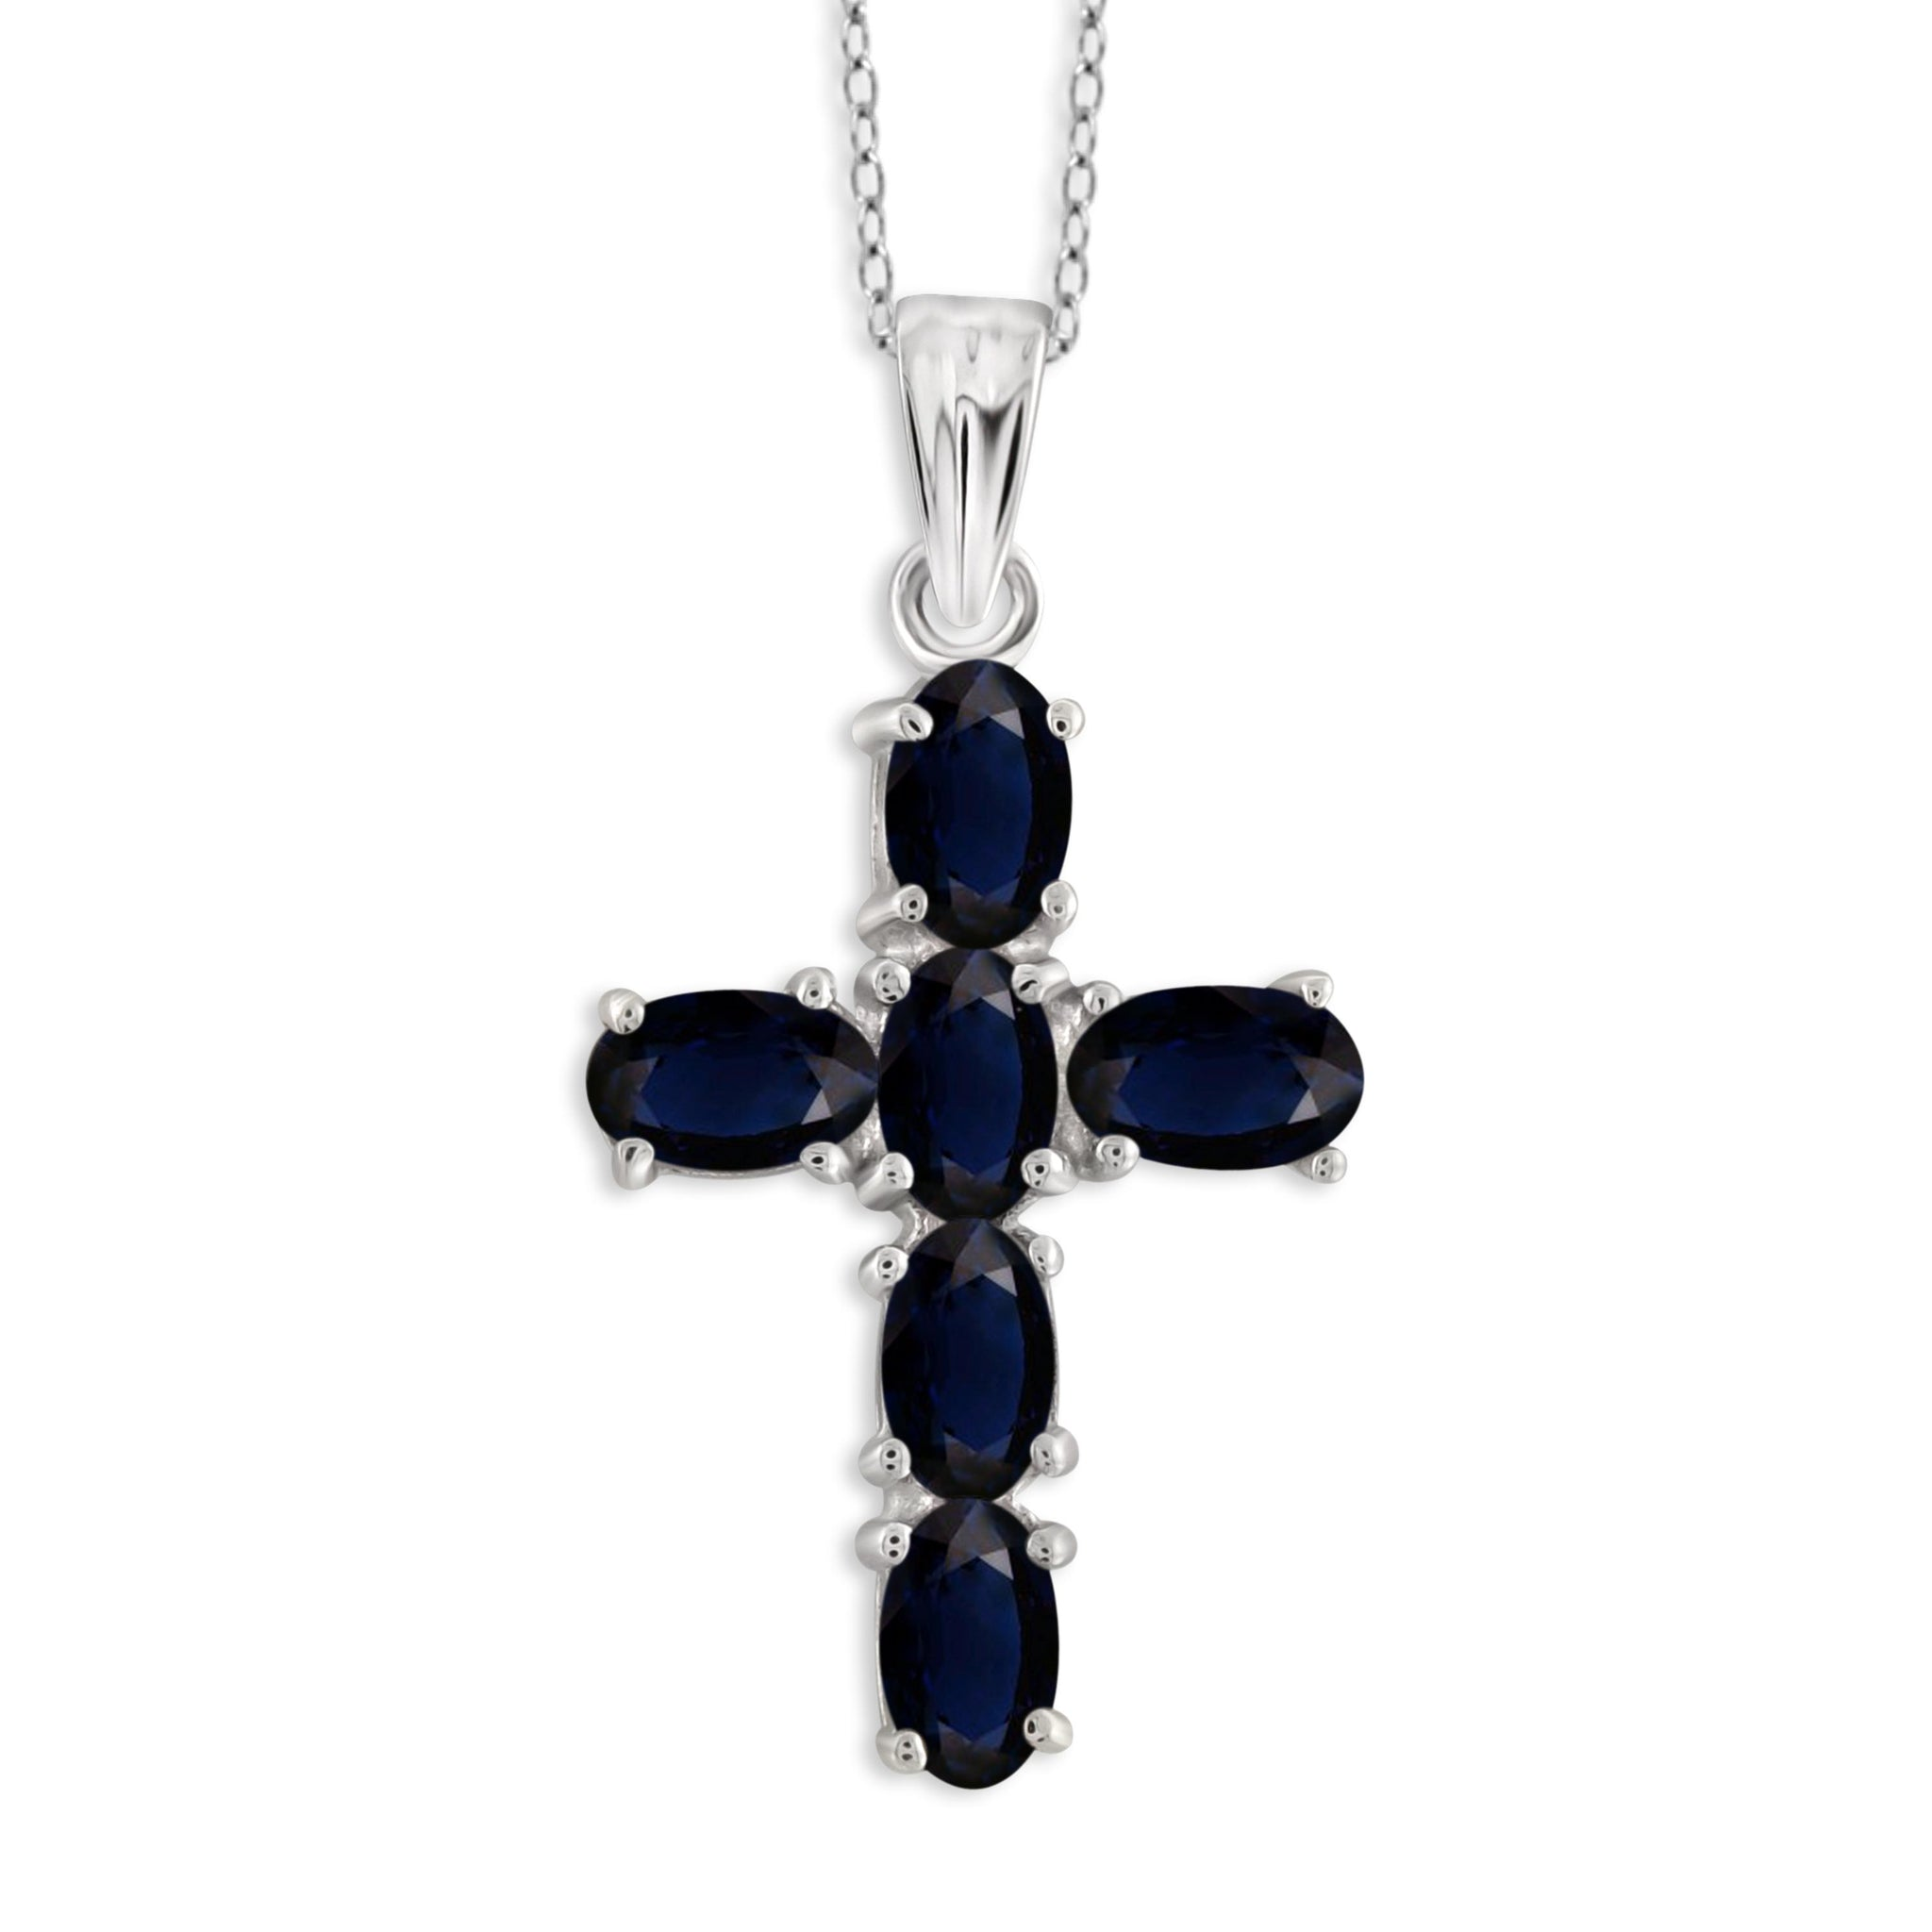 JewelonFire 1.90 Carat T.G.W. Sapphire Sterling Silver Cross Pendant - Assorted Colors